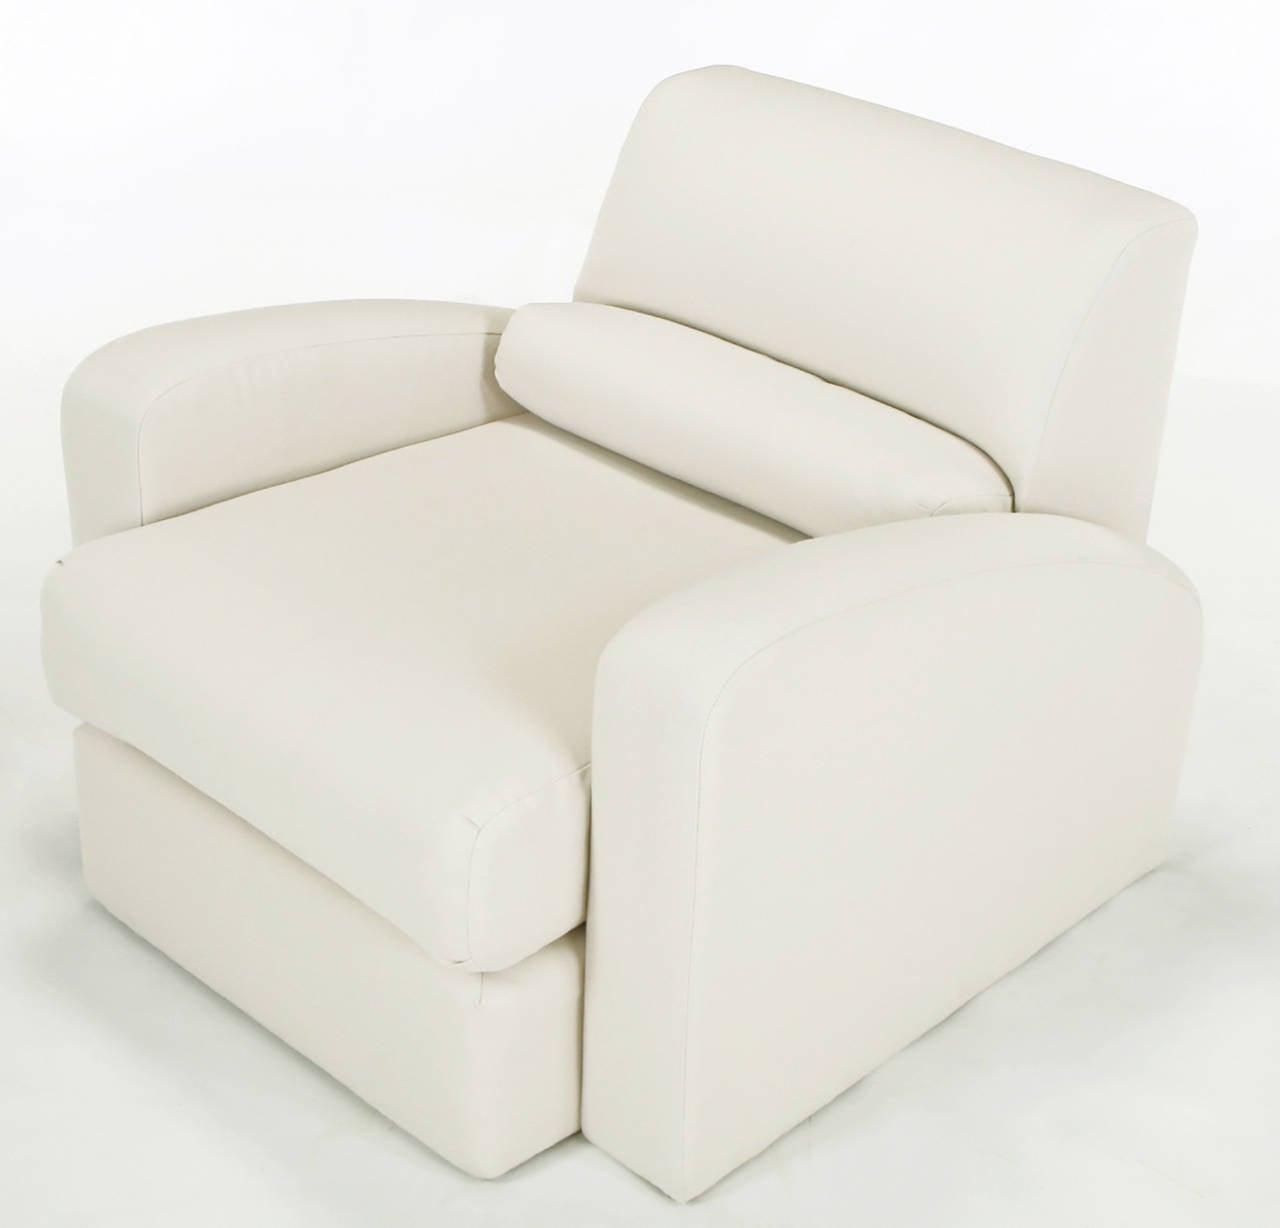 Jay Spectre Steamer Lounge Chair with Ottoman In Excellent Condition For Sale In Chicago, IL